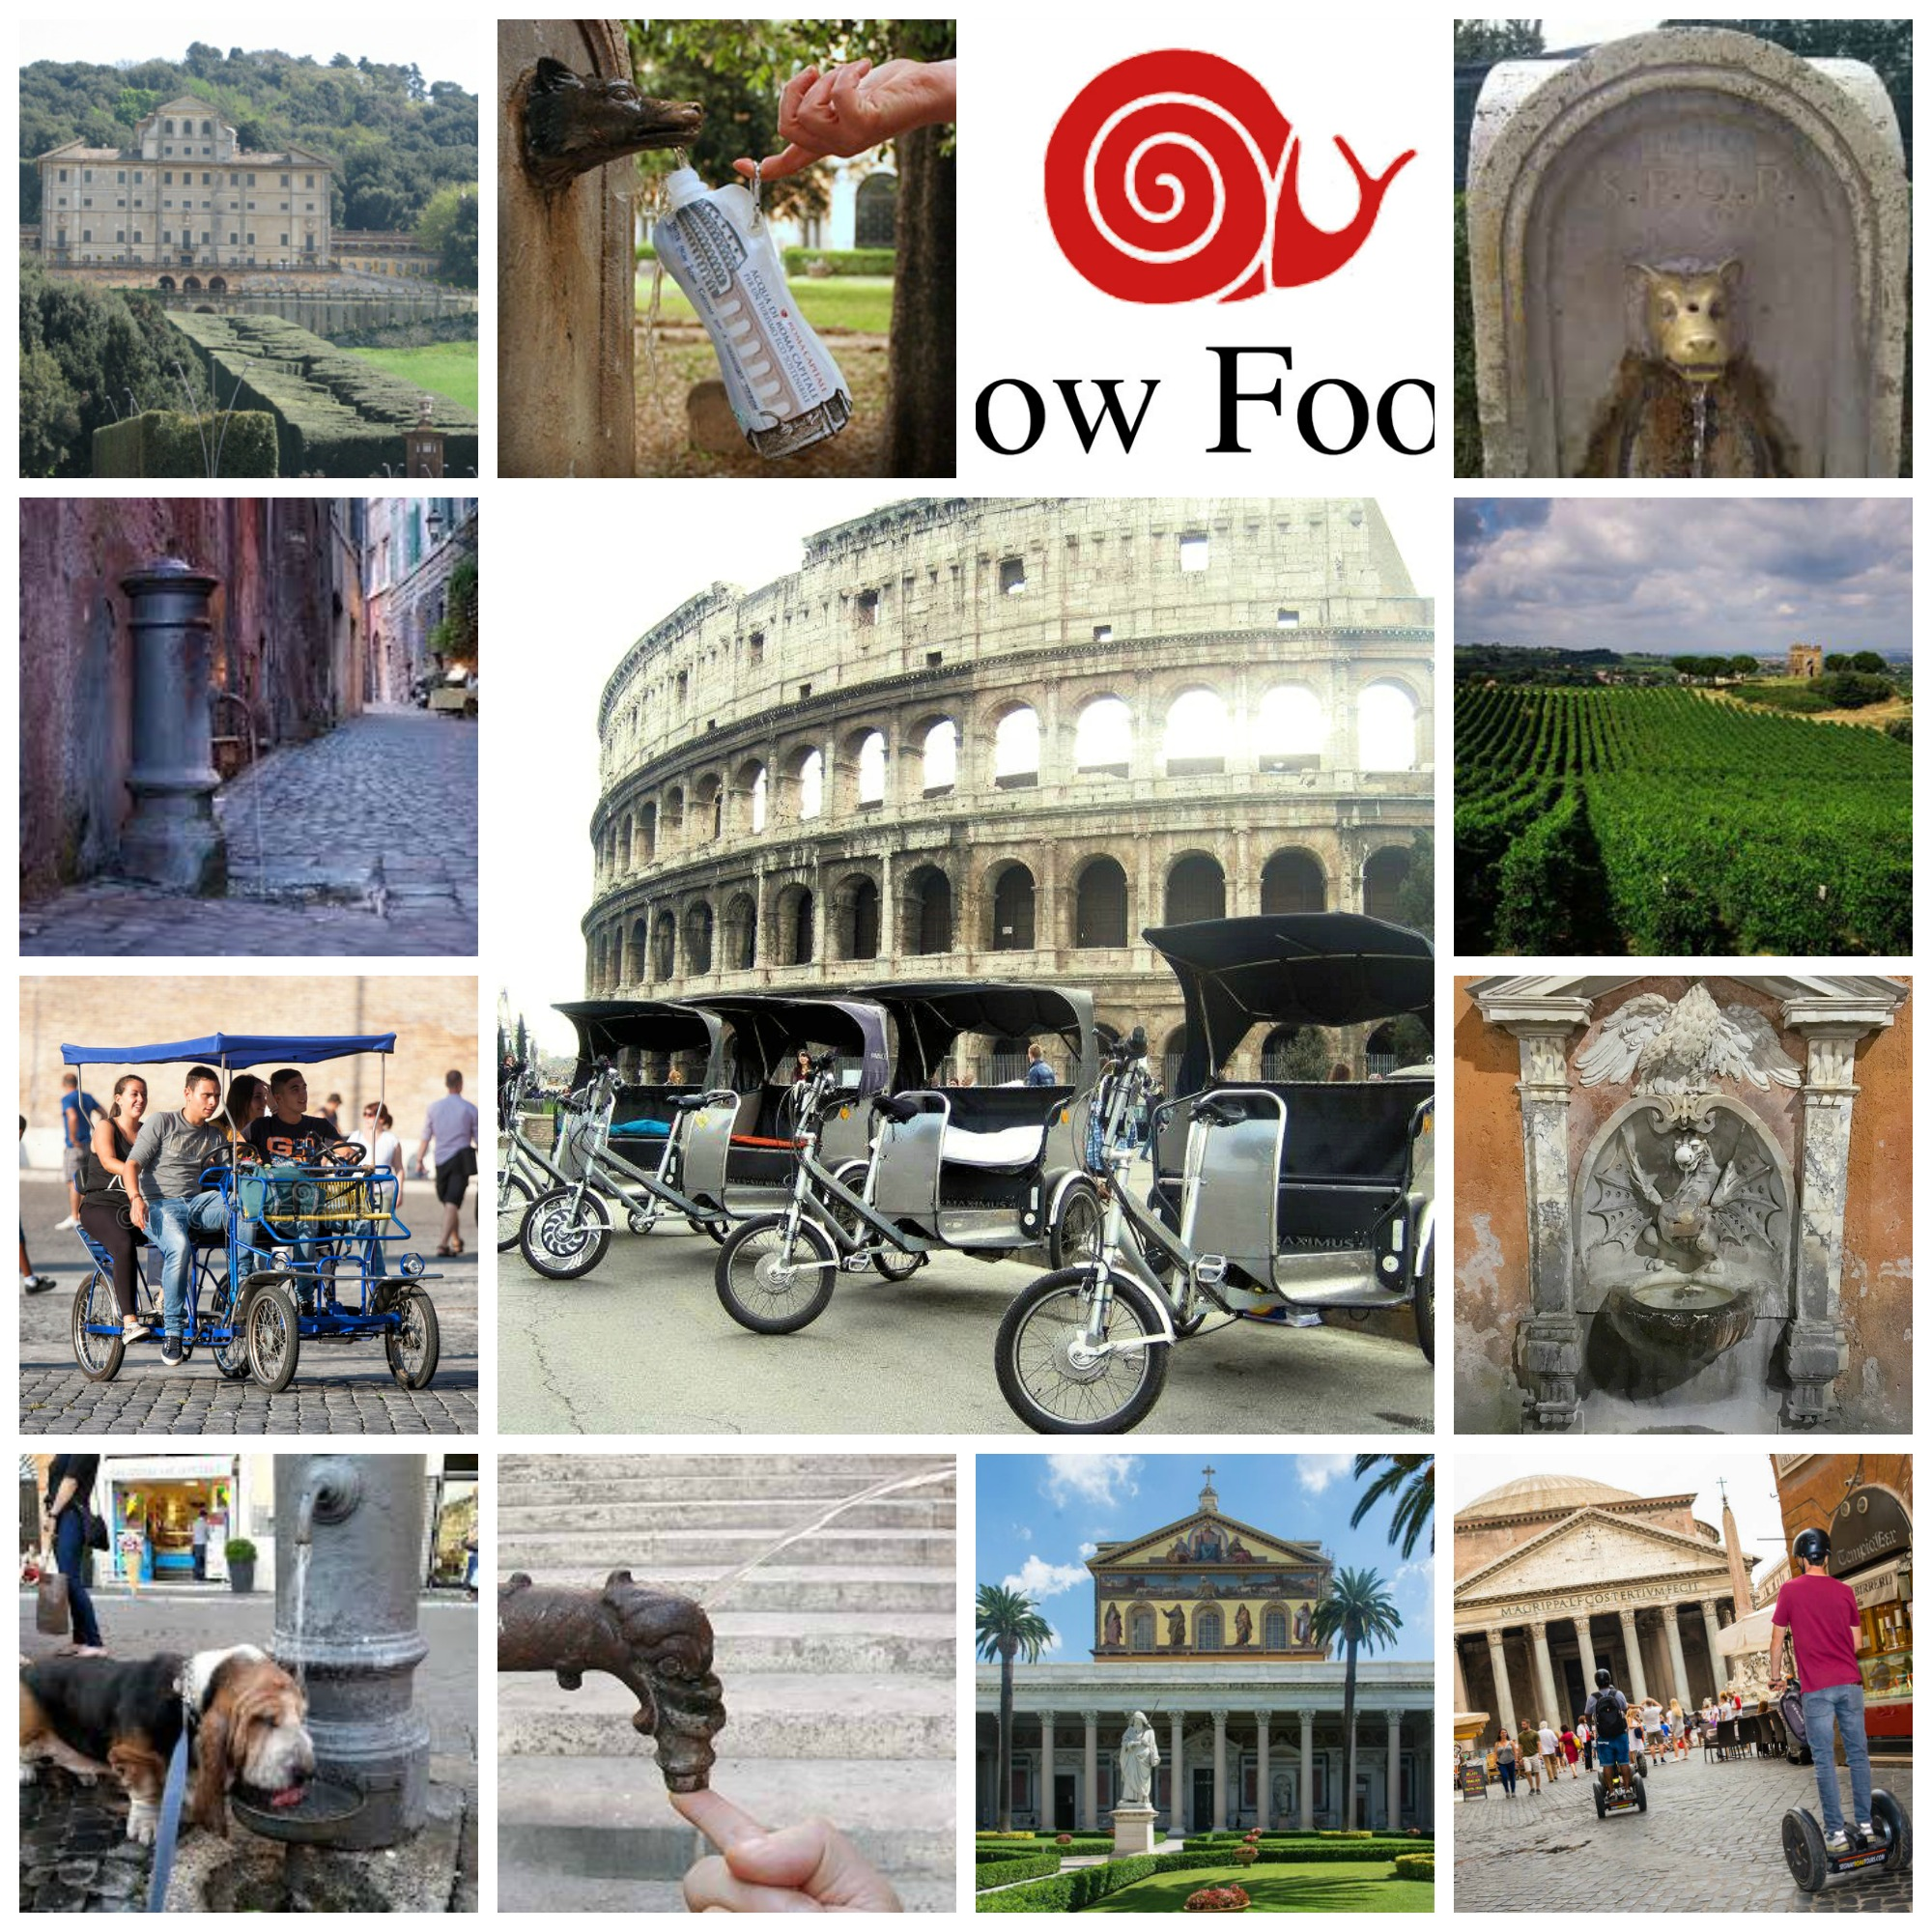 Supporting Sustainable Tourism in Rome